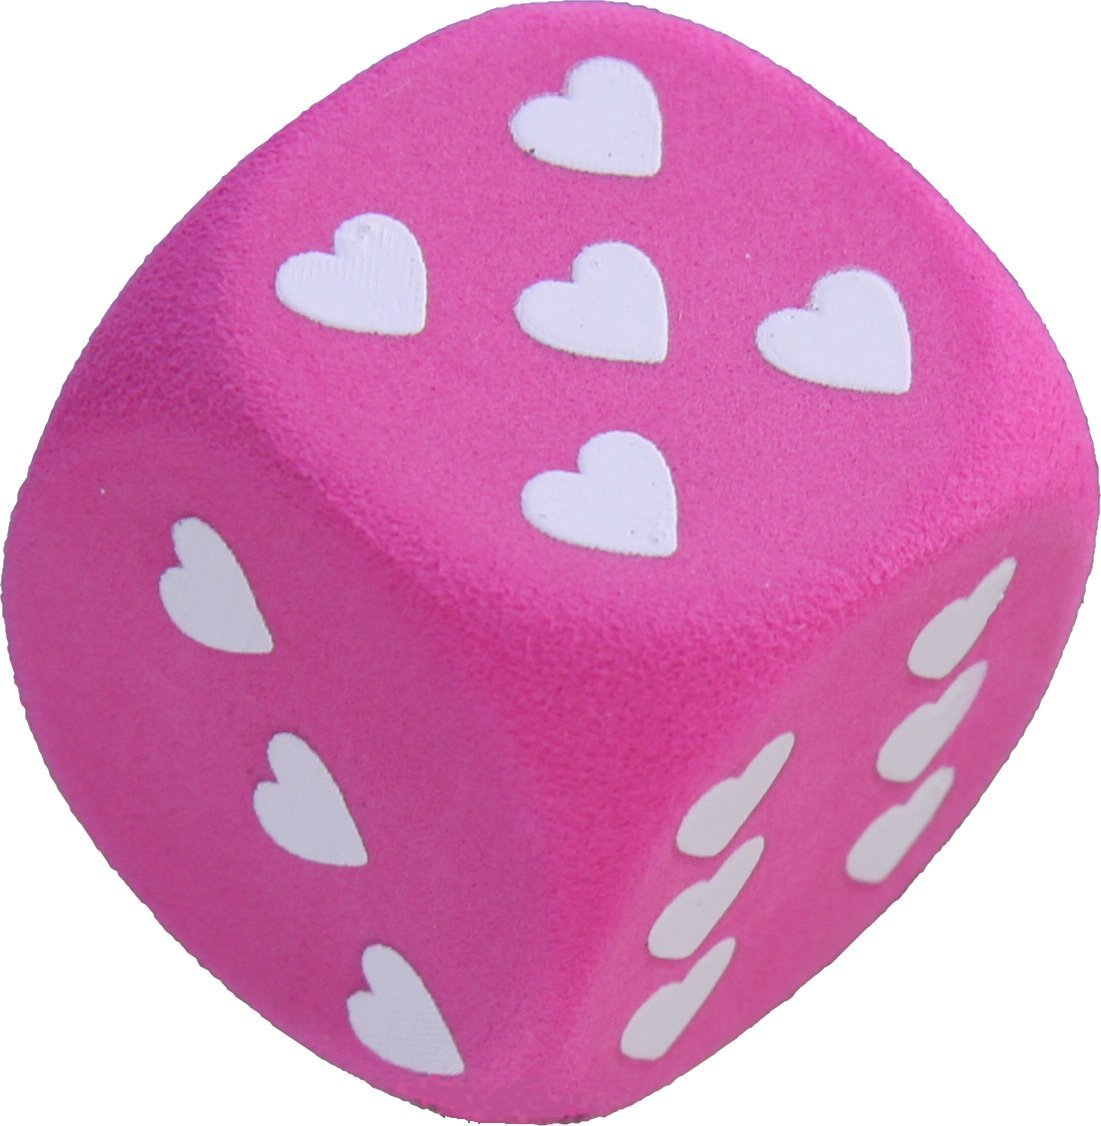 Pink Dice with White Hearts Car Aerial Ball Antenna Topper Aerialballs